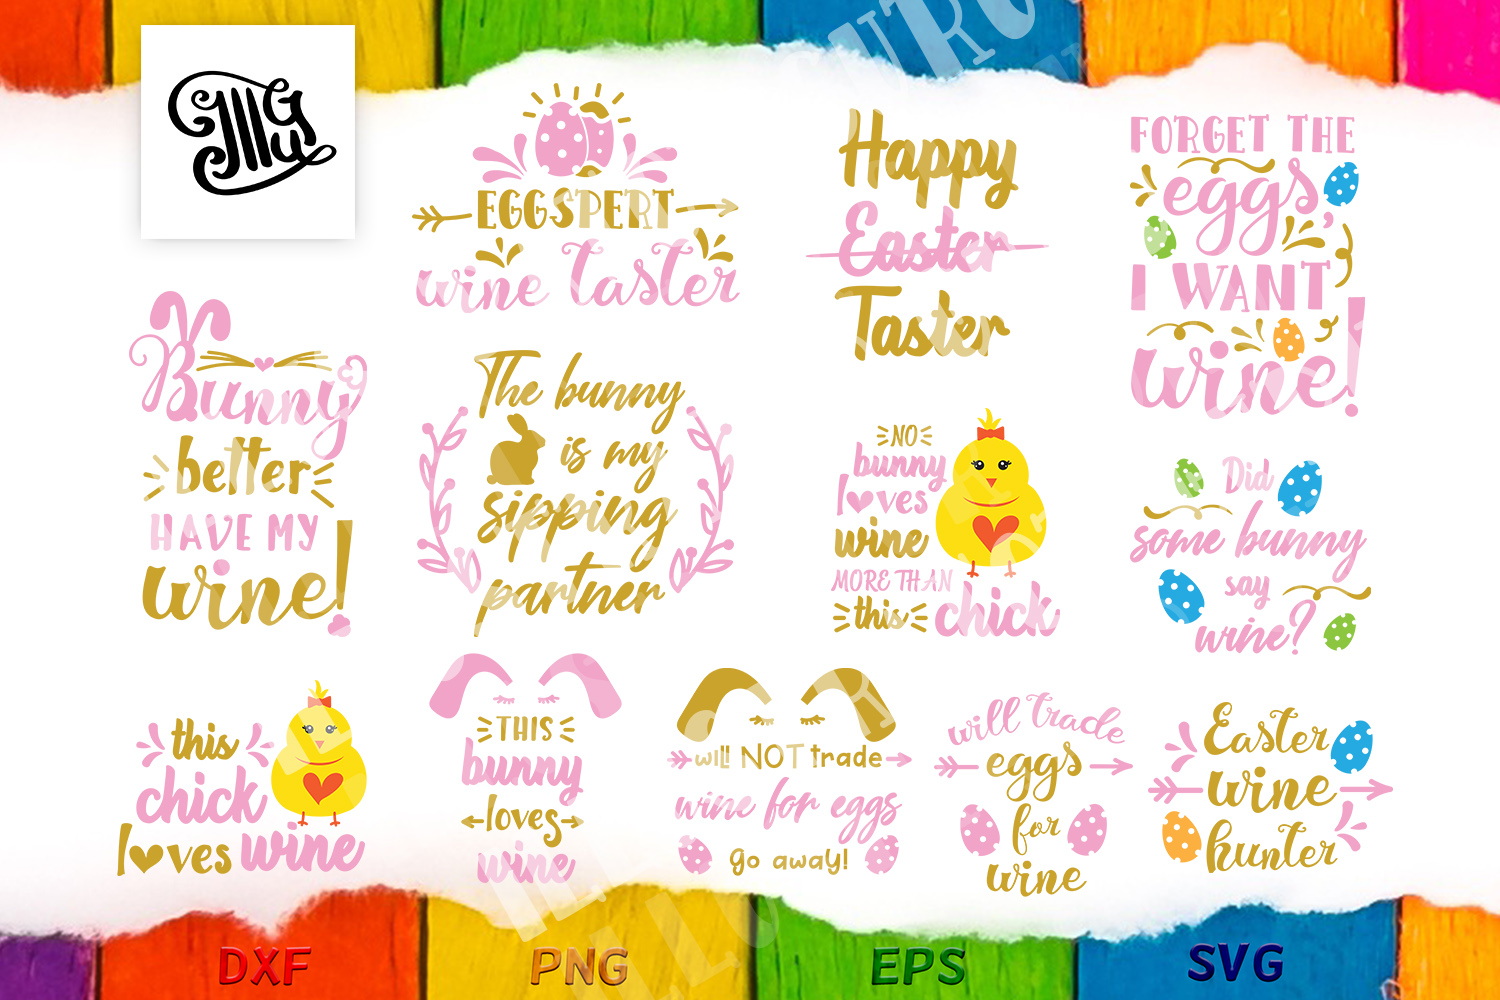 Download Free Easter Wine Sayings Graphic By Illustrator Guru Creative Fabrica for Cricut Explore, Silhouette and other cutting machines.